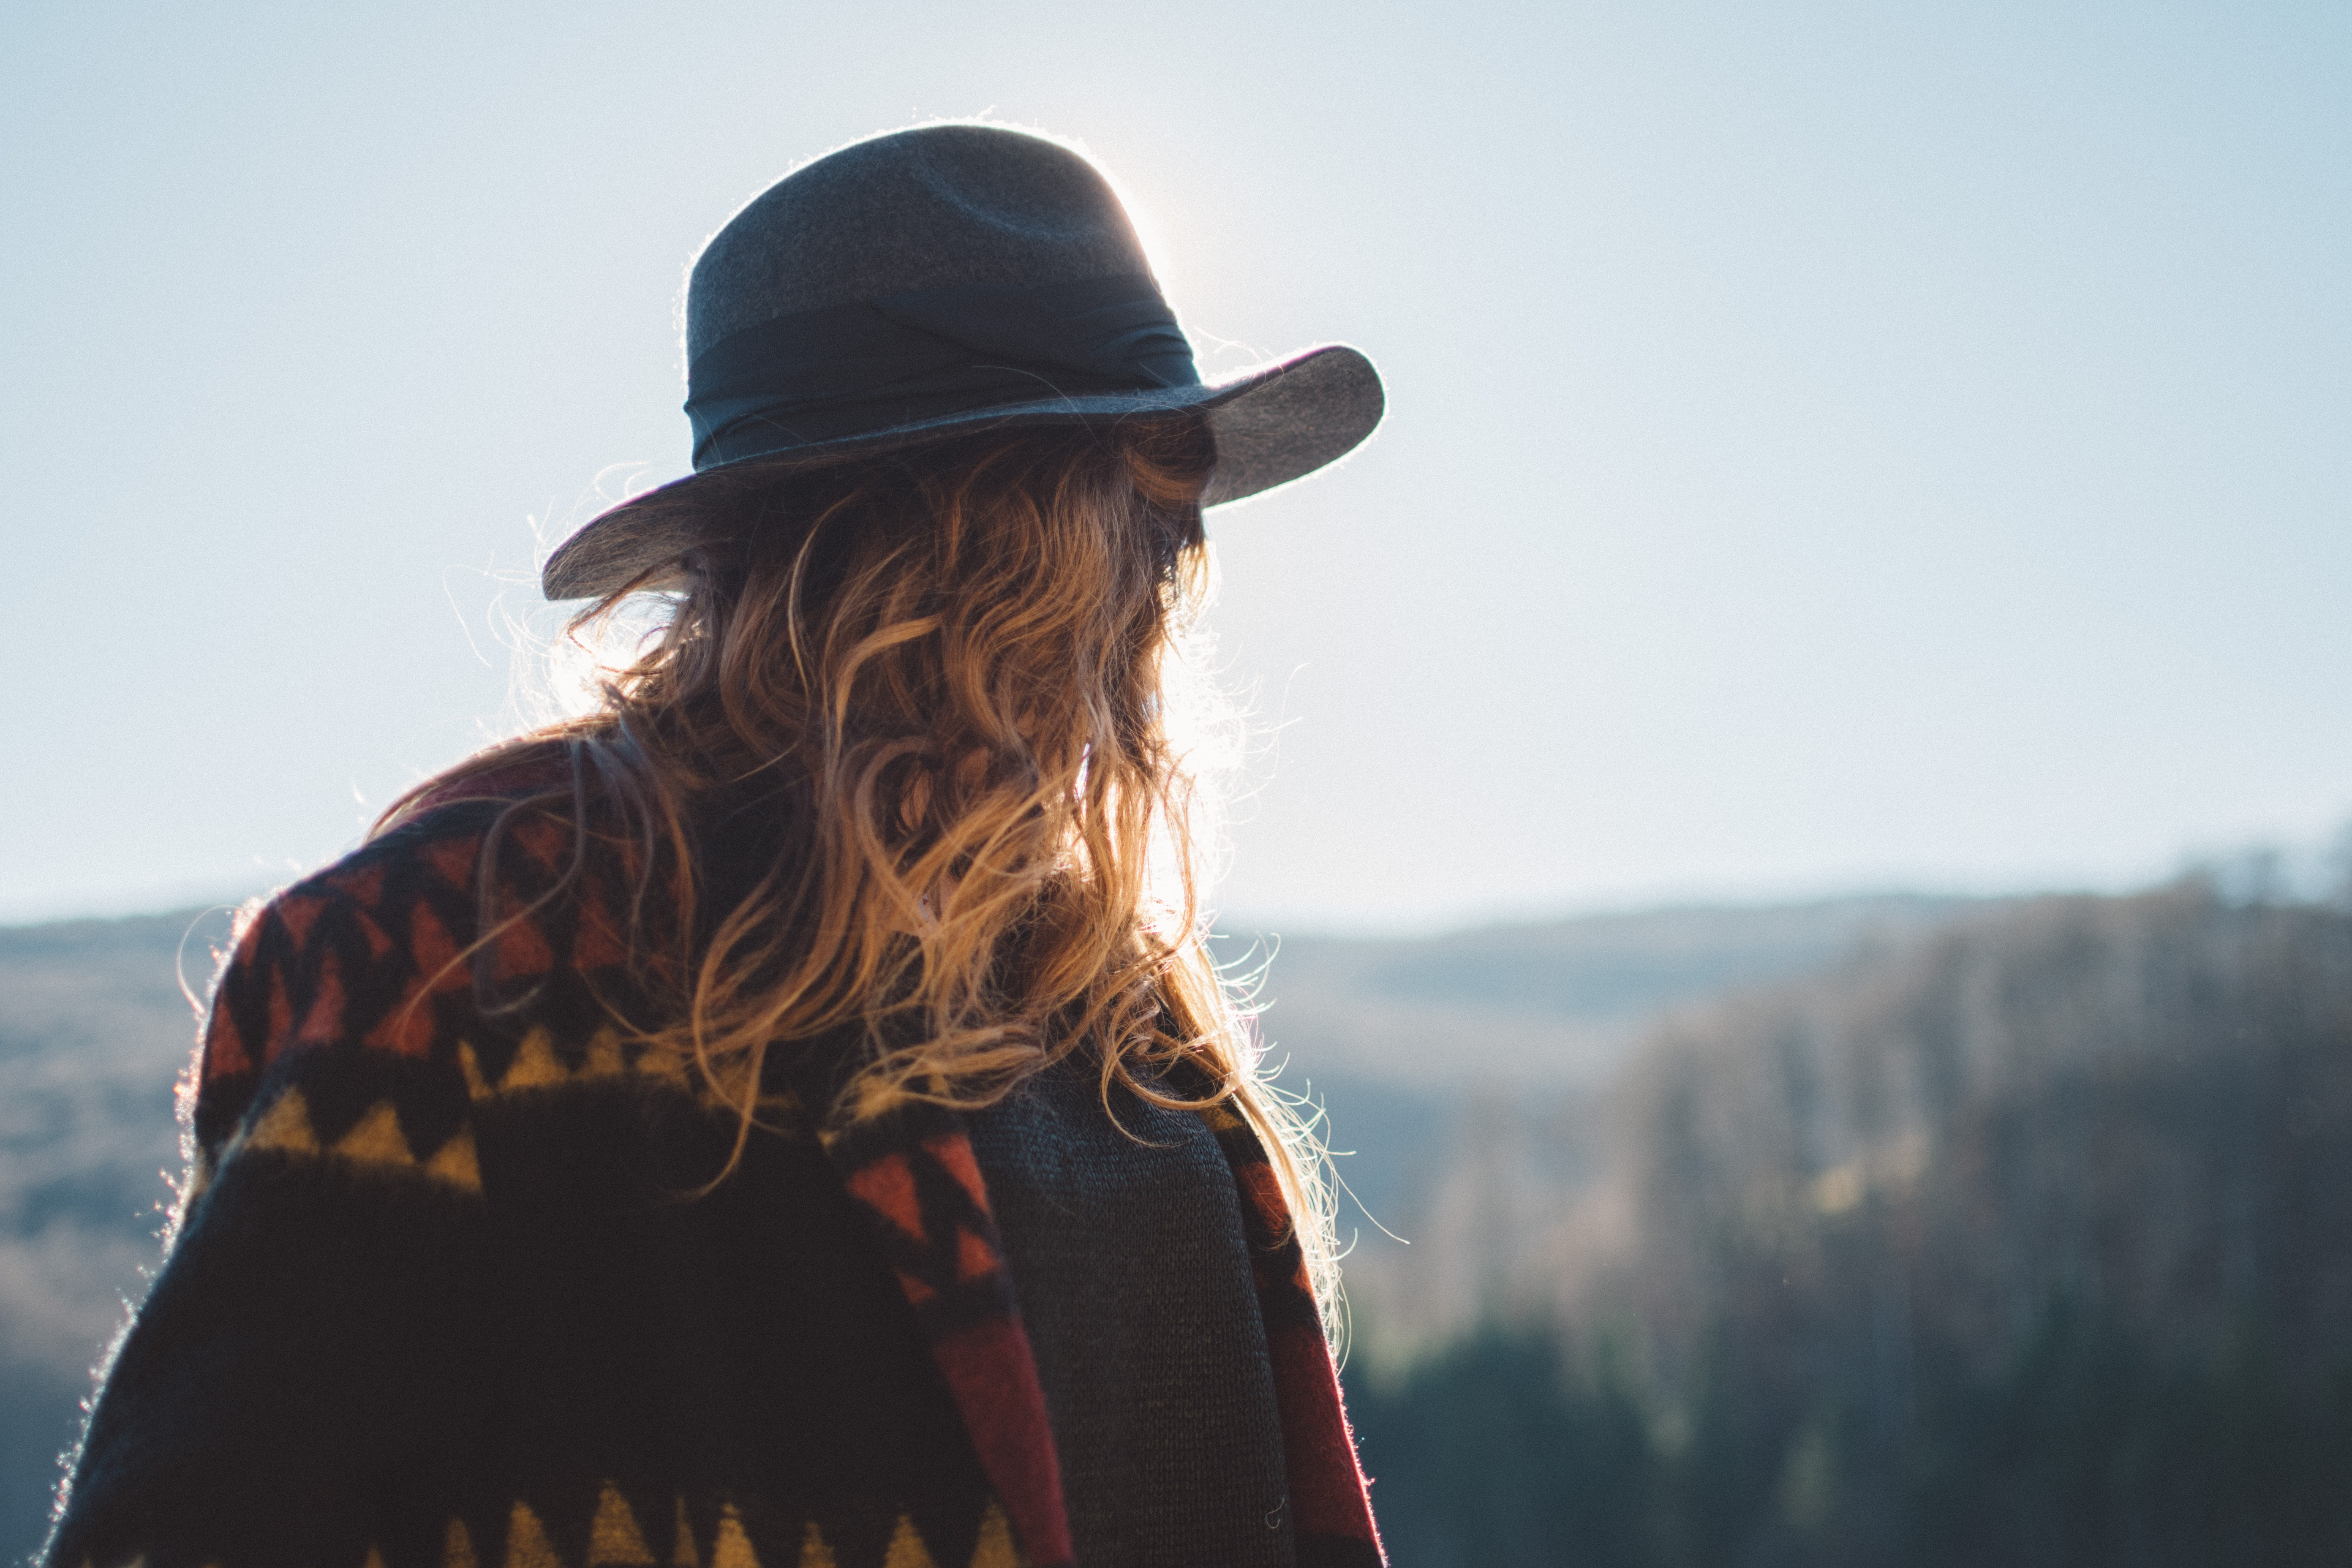 A woman wearing Western-style clothing looking towards a hilly landscape.